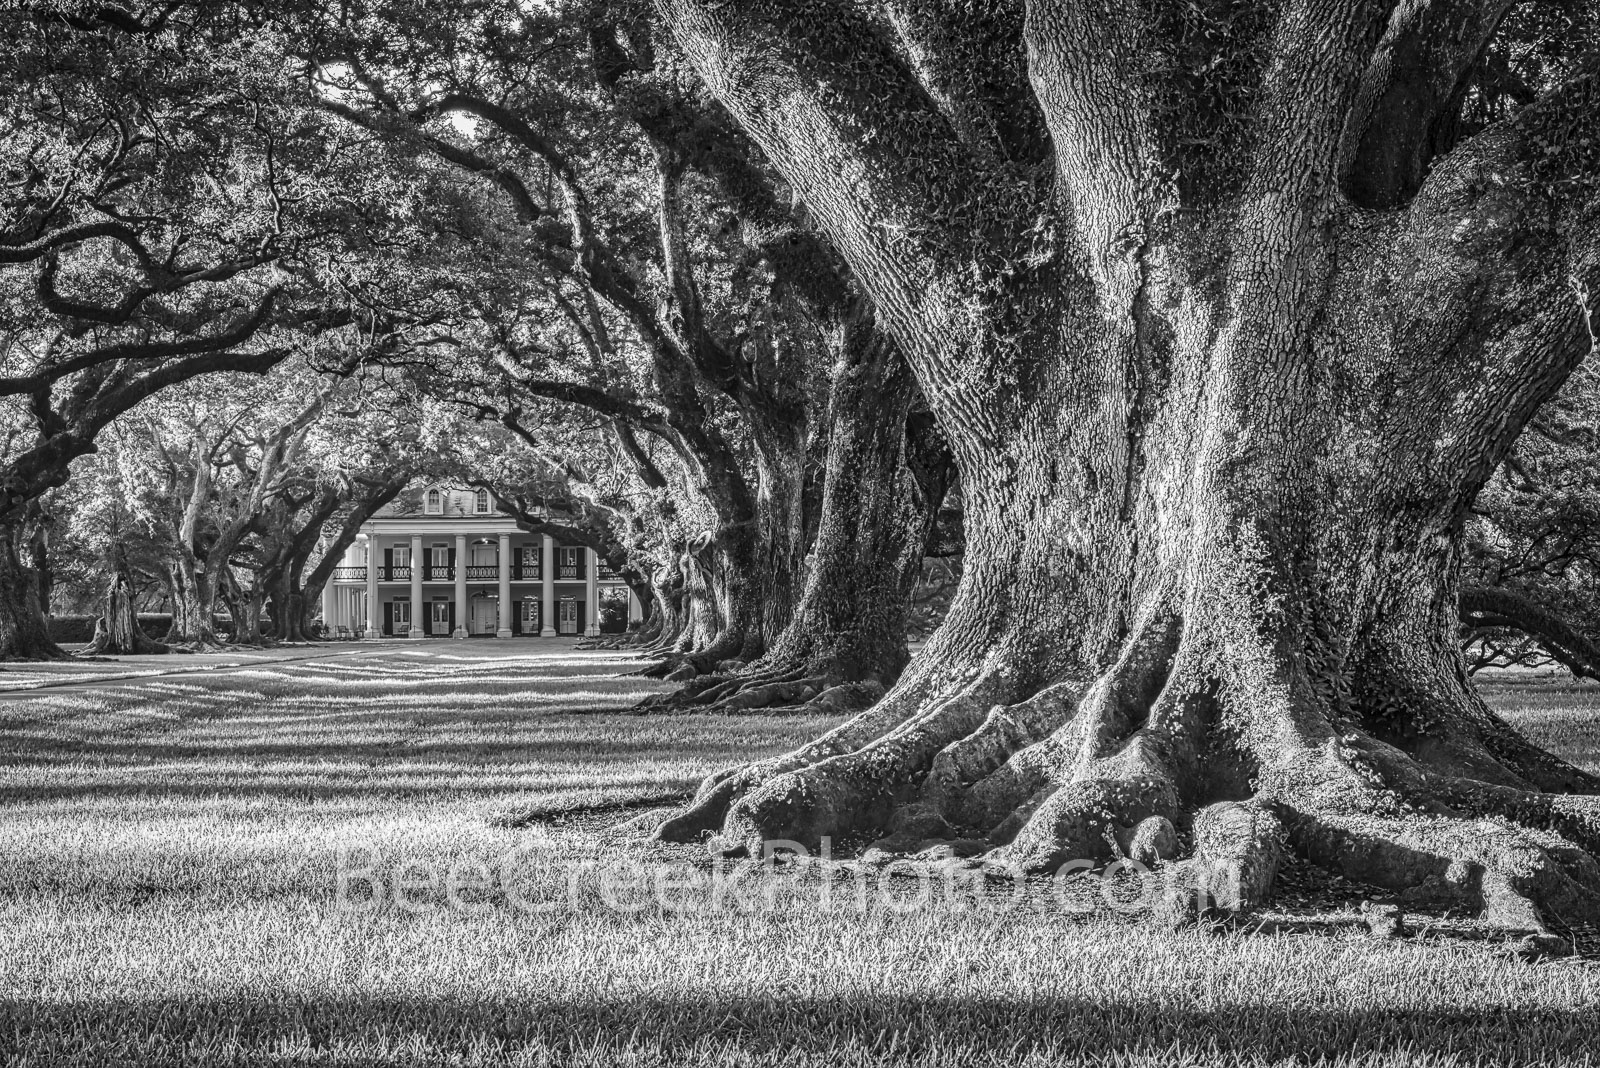 oak alley plantation, oak alley, b w, black and white, louisiana, plantation, oak valley, seven oaks, mansion, oak trees, roots, branches, sunrise, sugar cane, slaves, mississippi, river, southern, us, photo